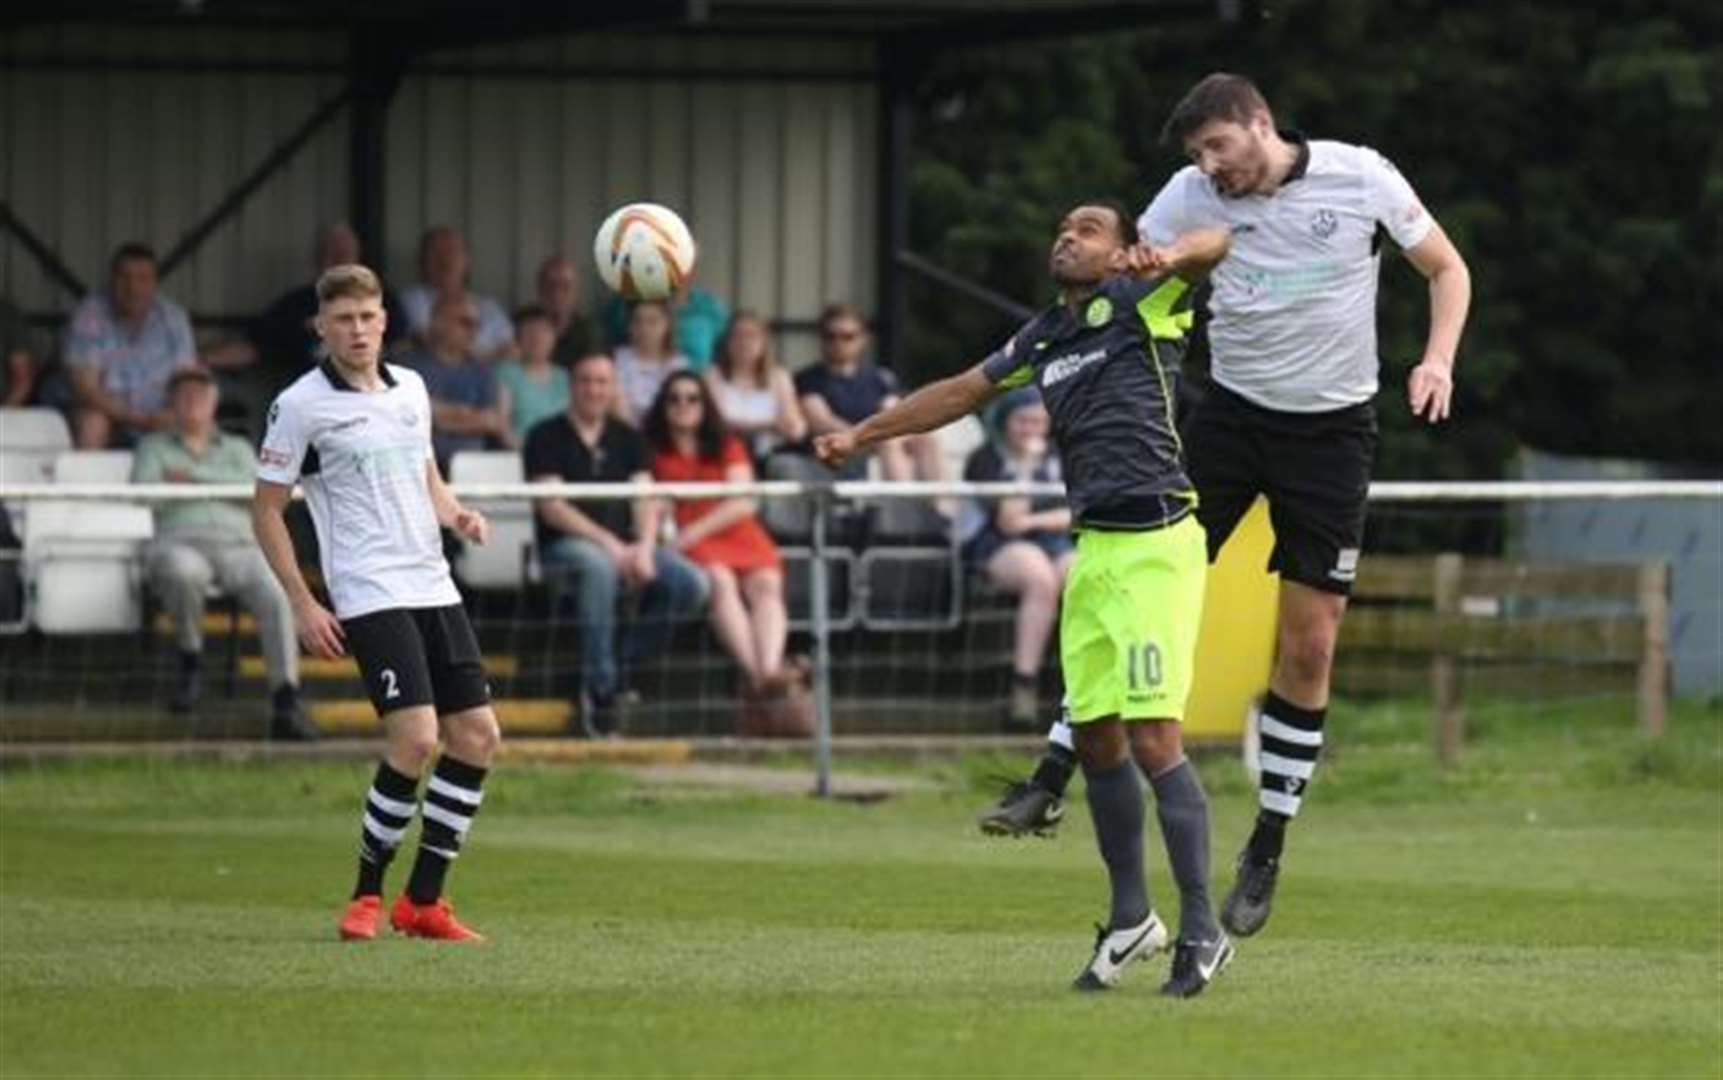 Jack Wilkinson and Jordan Gent make Cambridge City exit